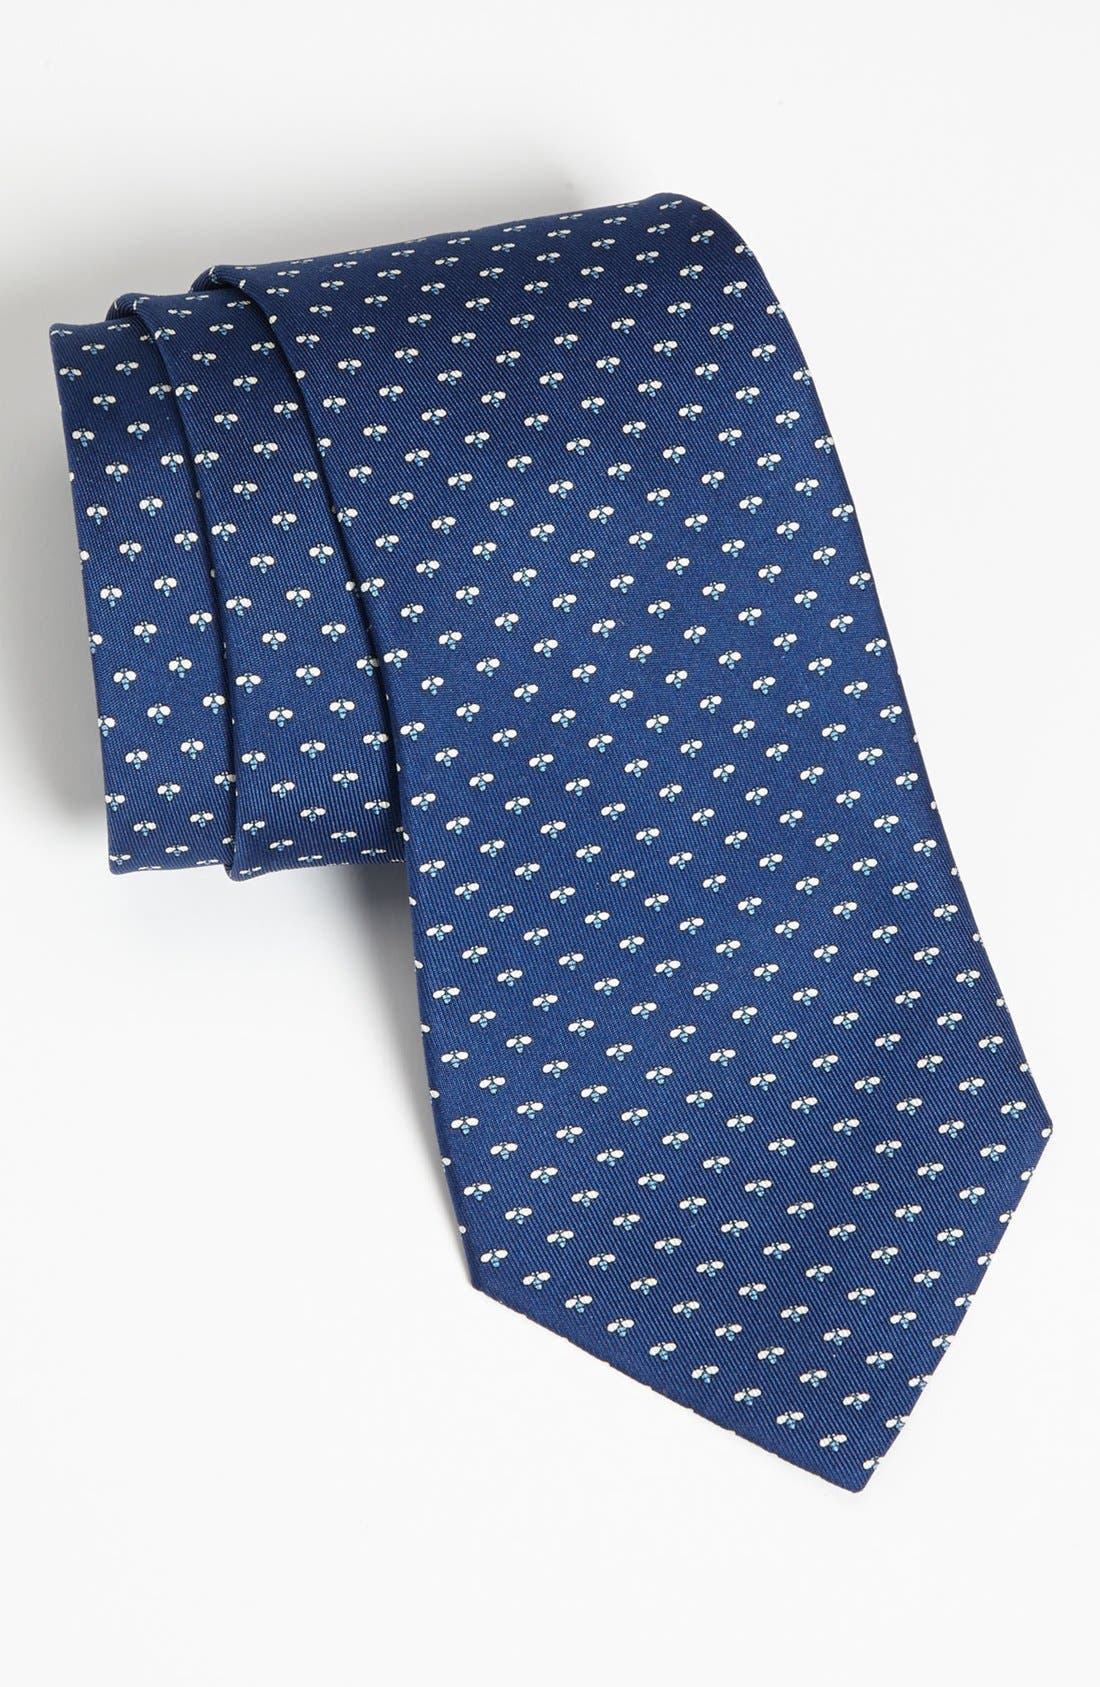 Alternate Image 1 Selected - Salvatore Ferragamo Firefly Print Silk Tie